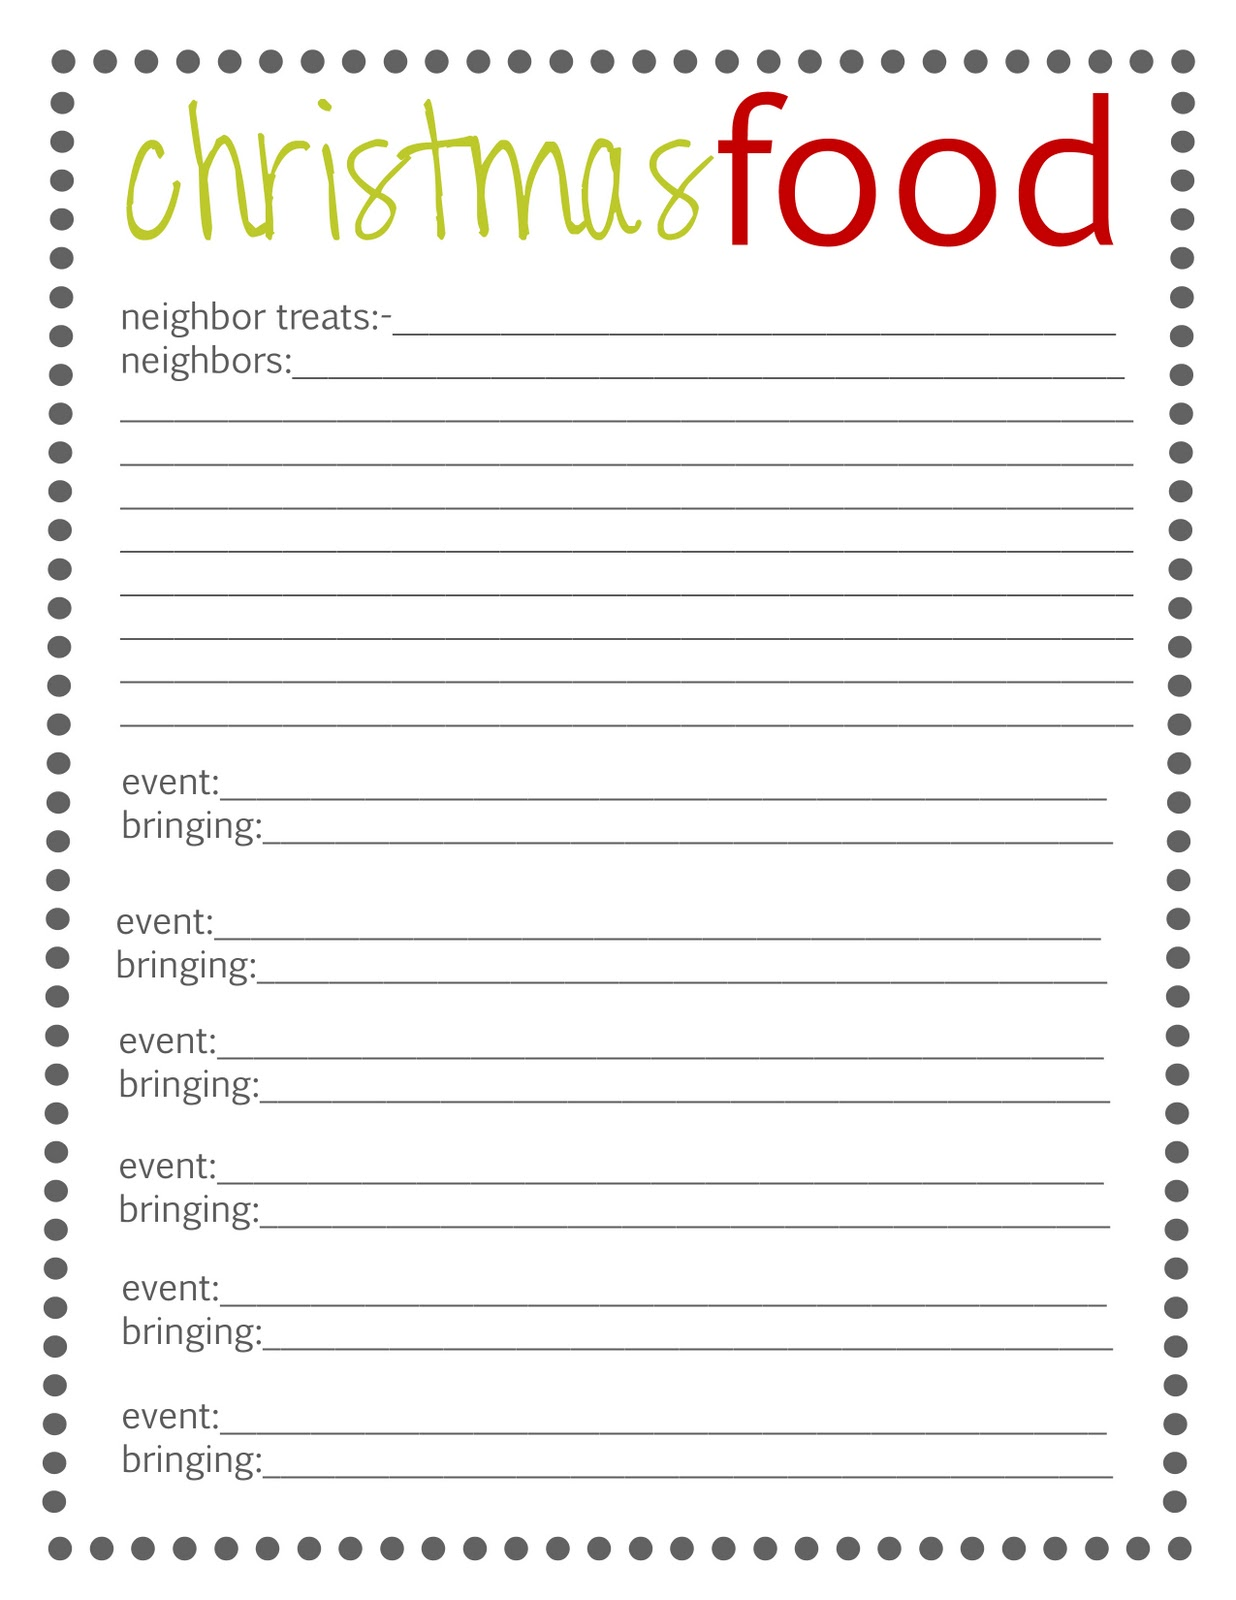 sign up sheet template google docs